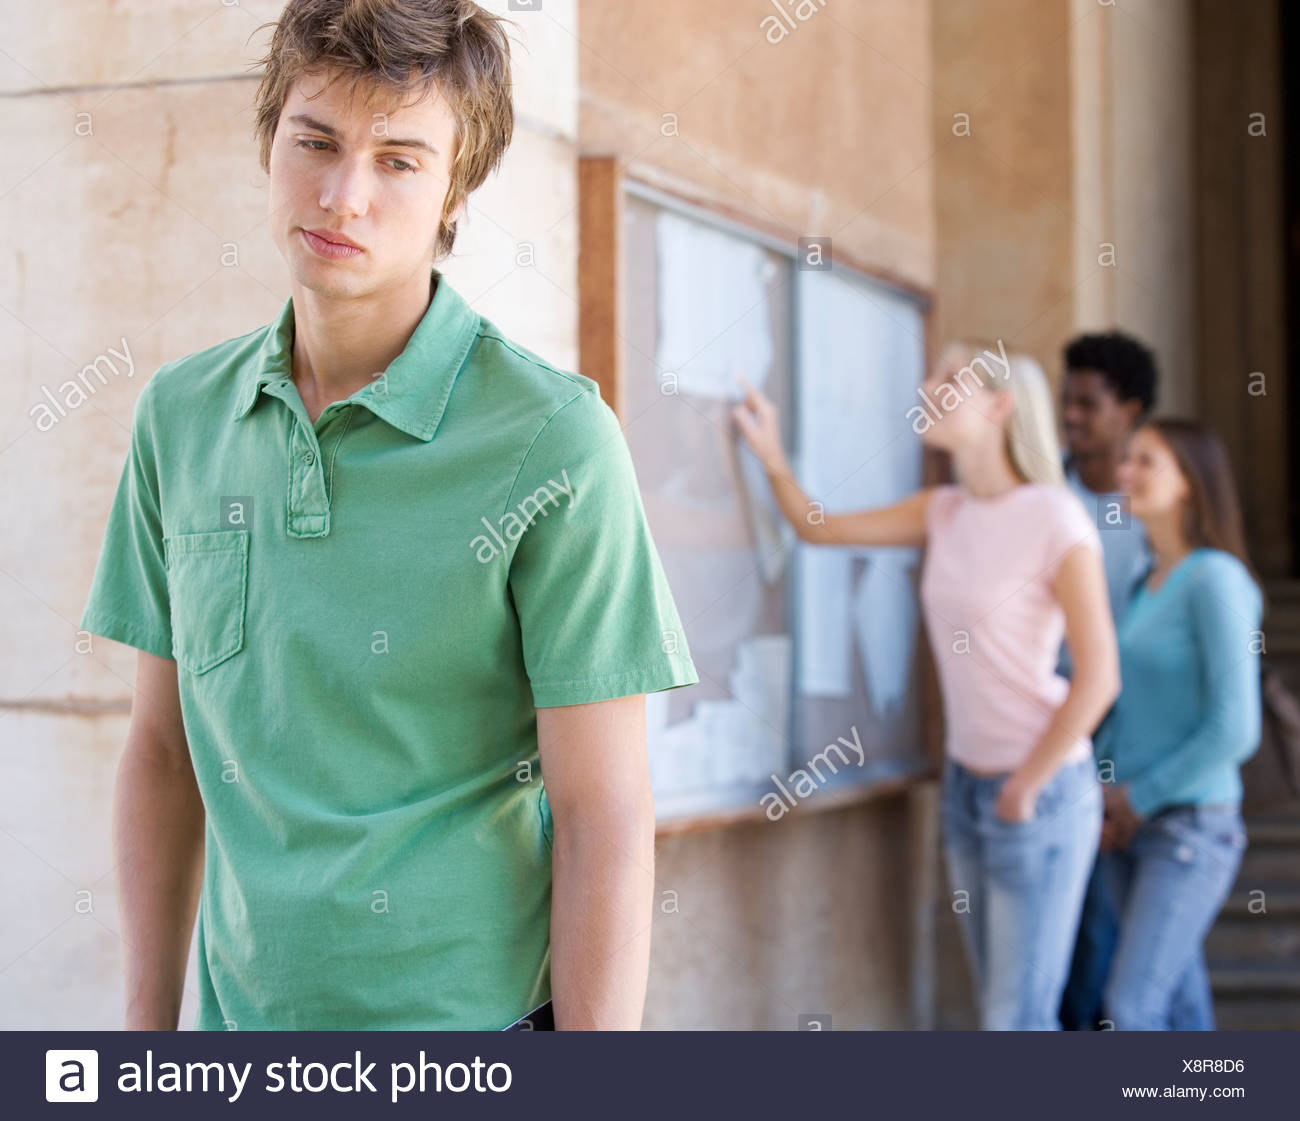 A student disappointed by his exam results - Stock Image